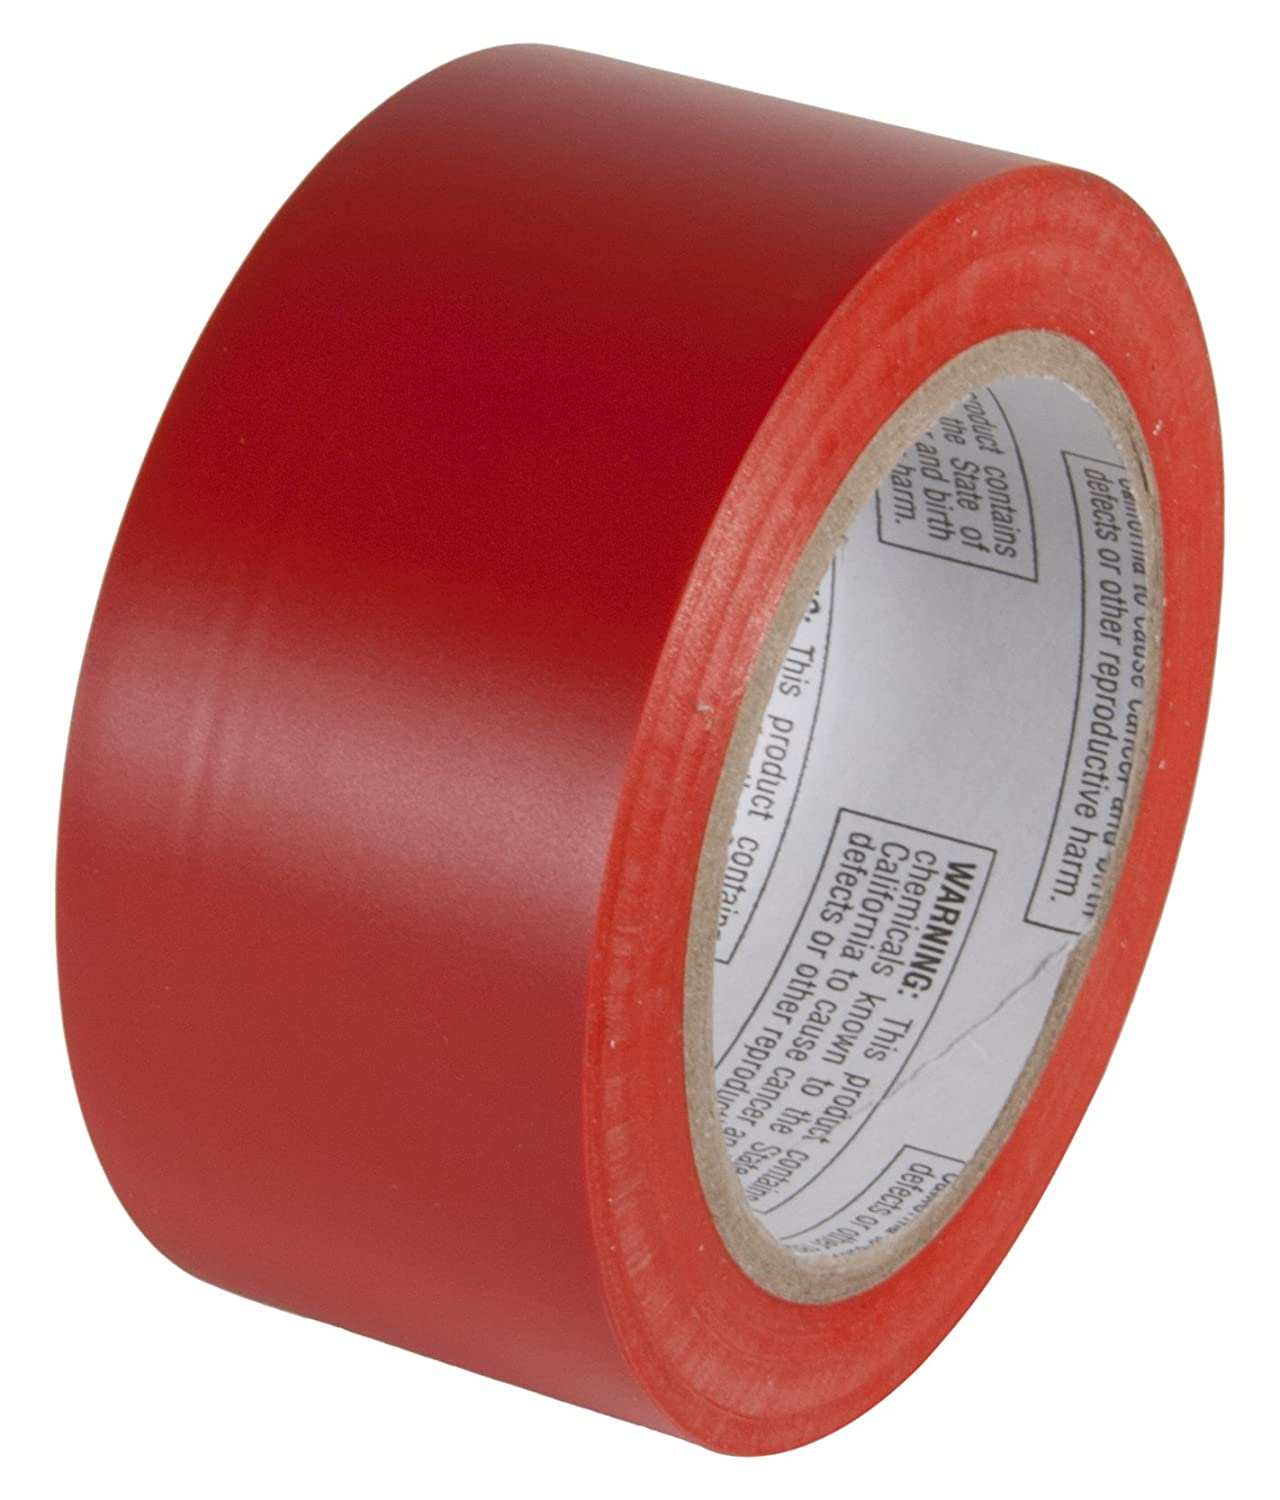 INCOM Manufacturing Group PST212 Aisle Marking Conformable Tape, 2-Inch X 108-Feet, Safety Red